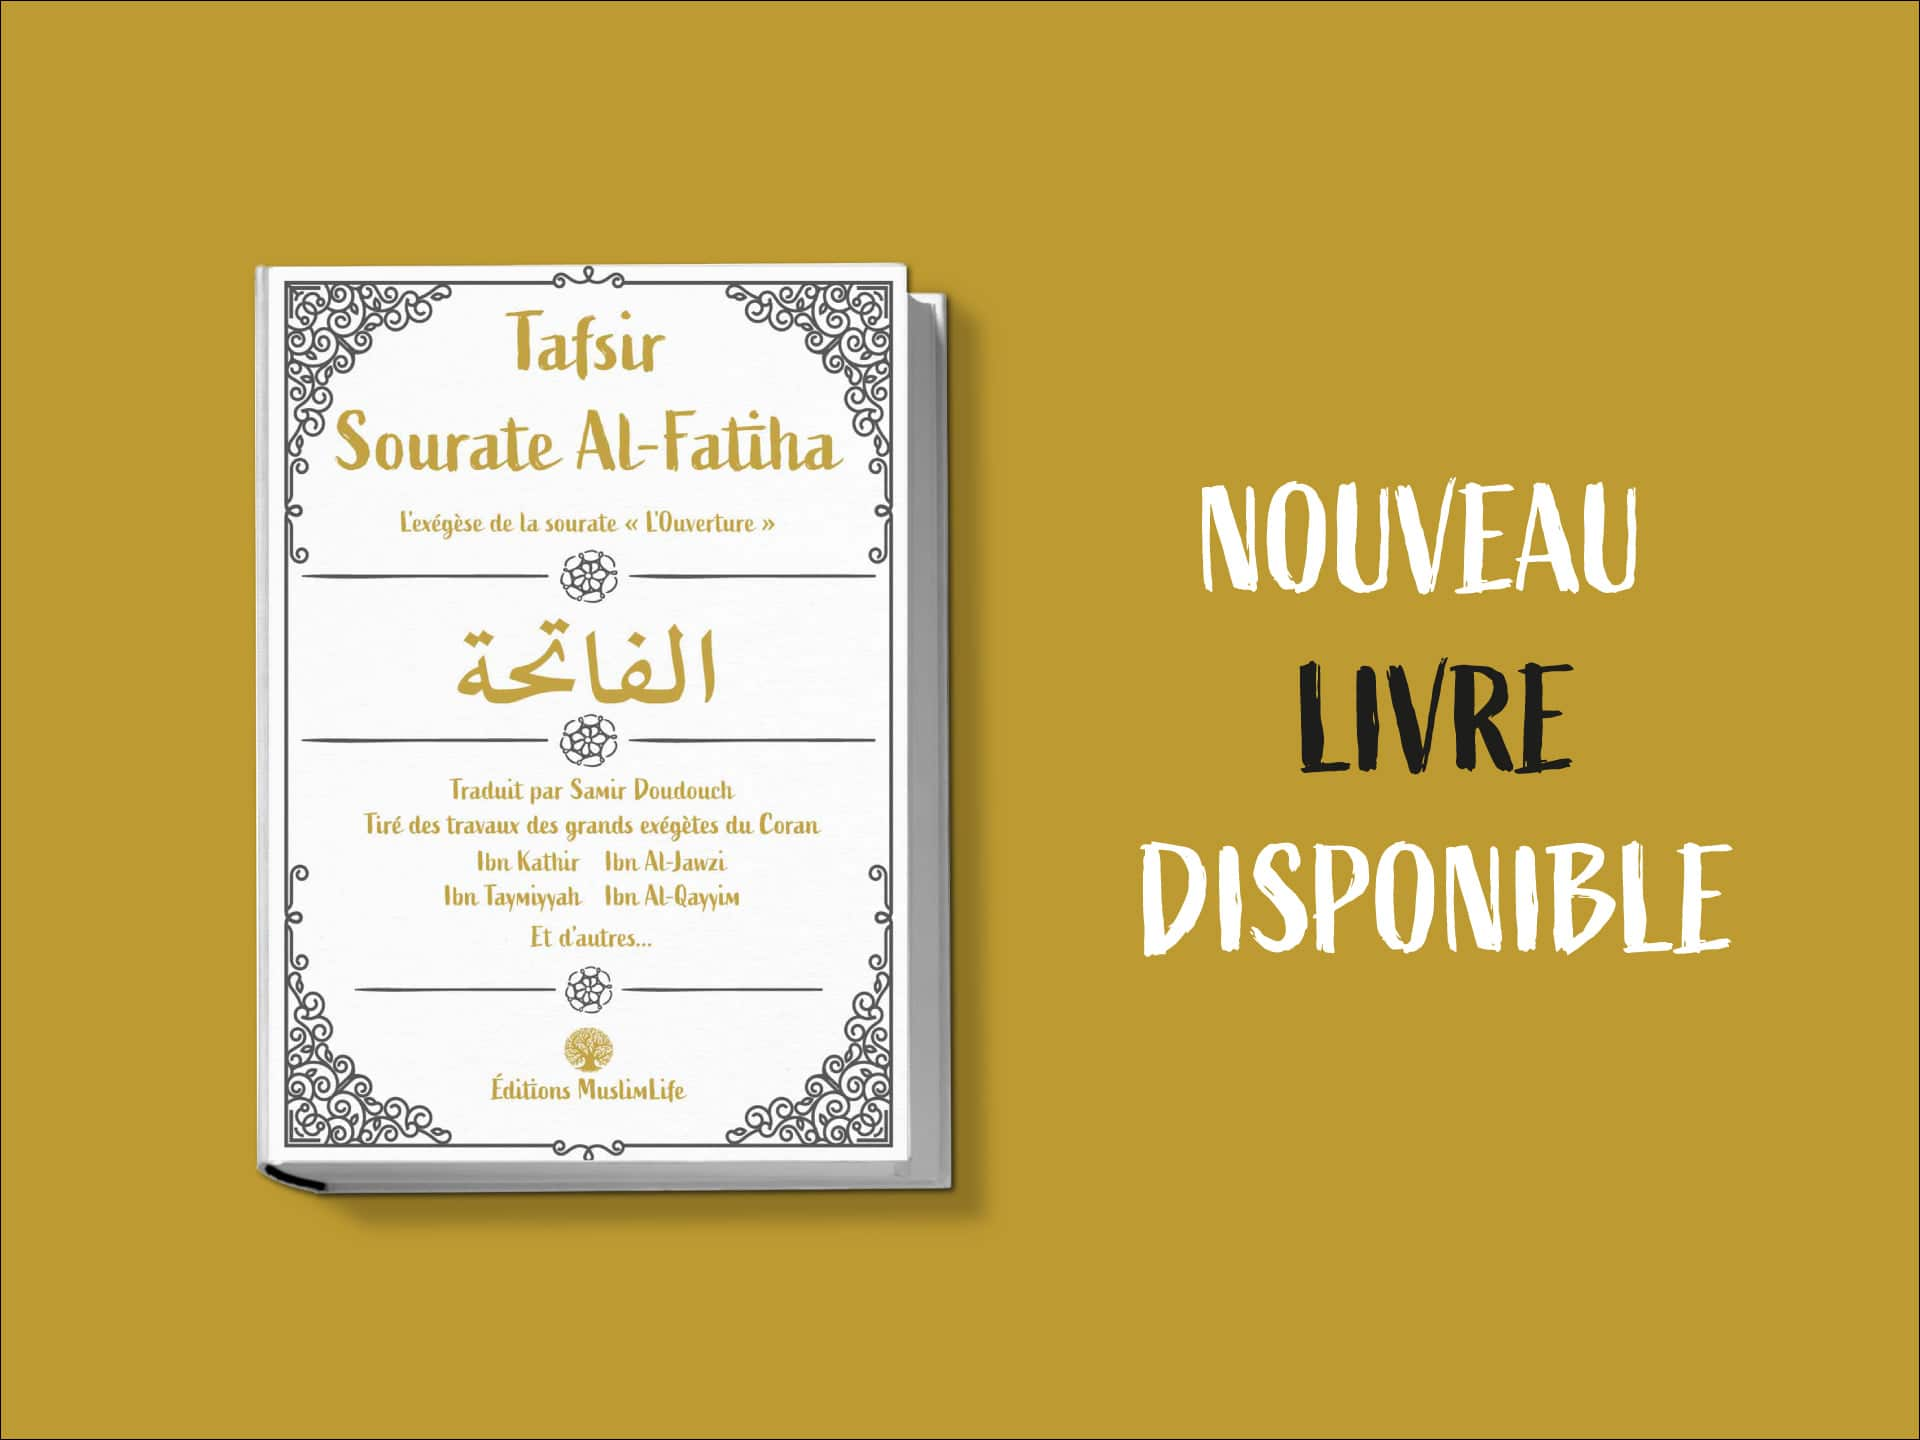 Tafsir sourate al fatiha